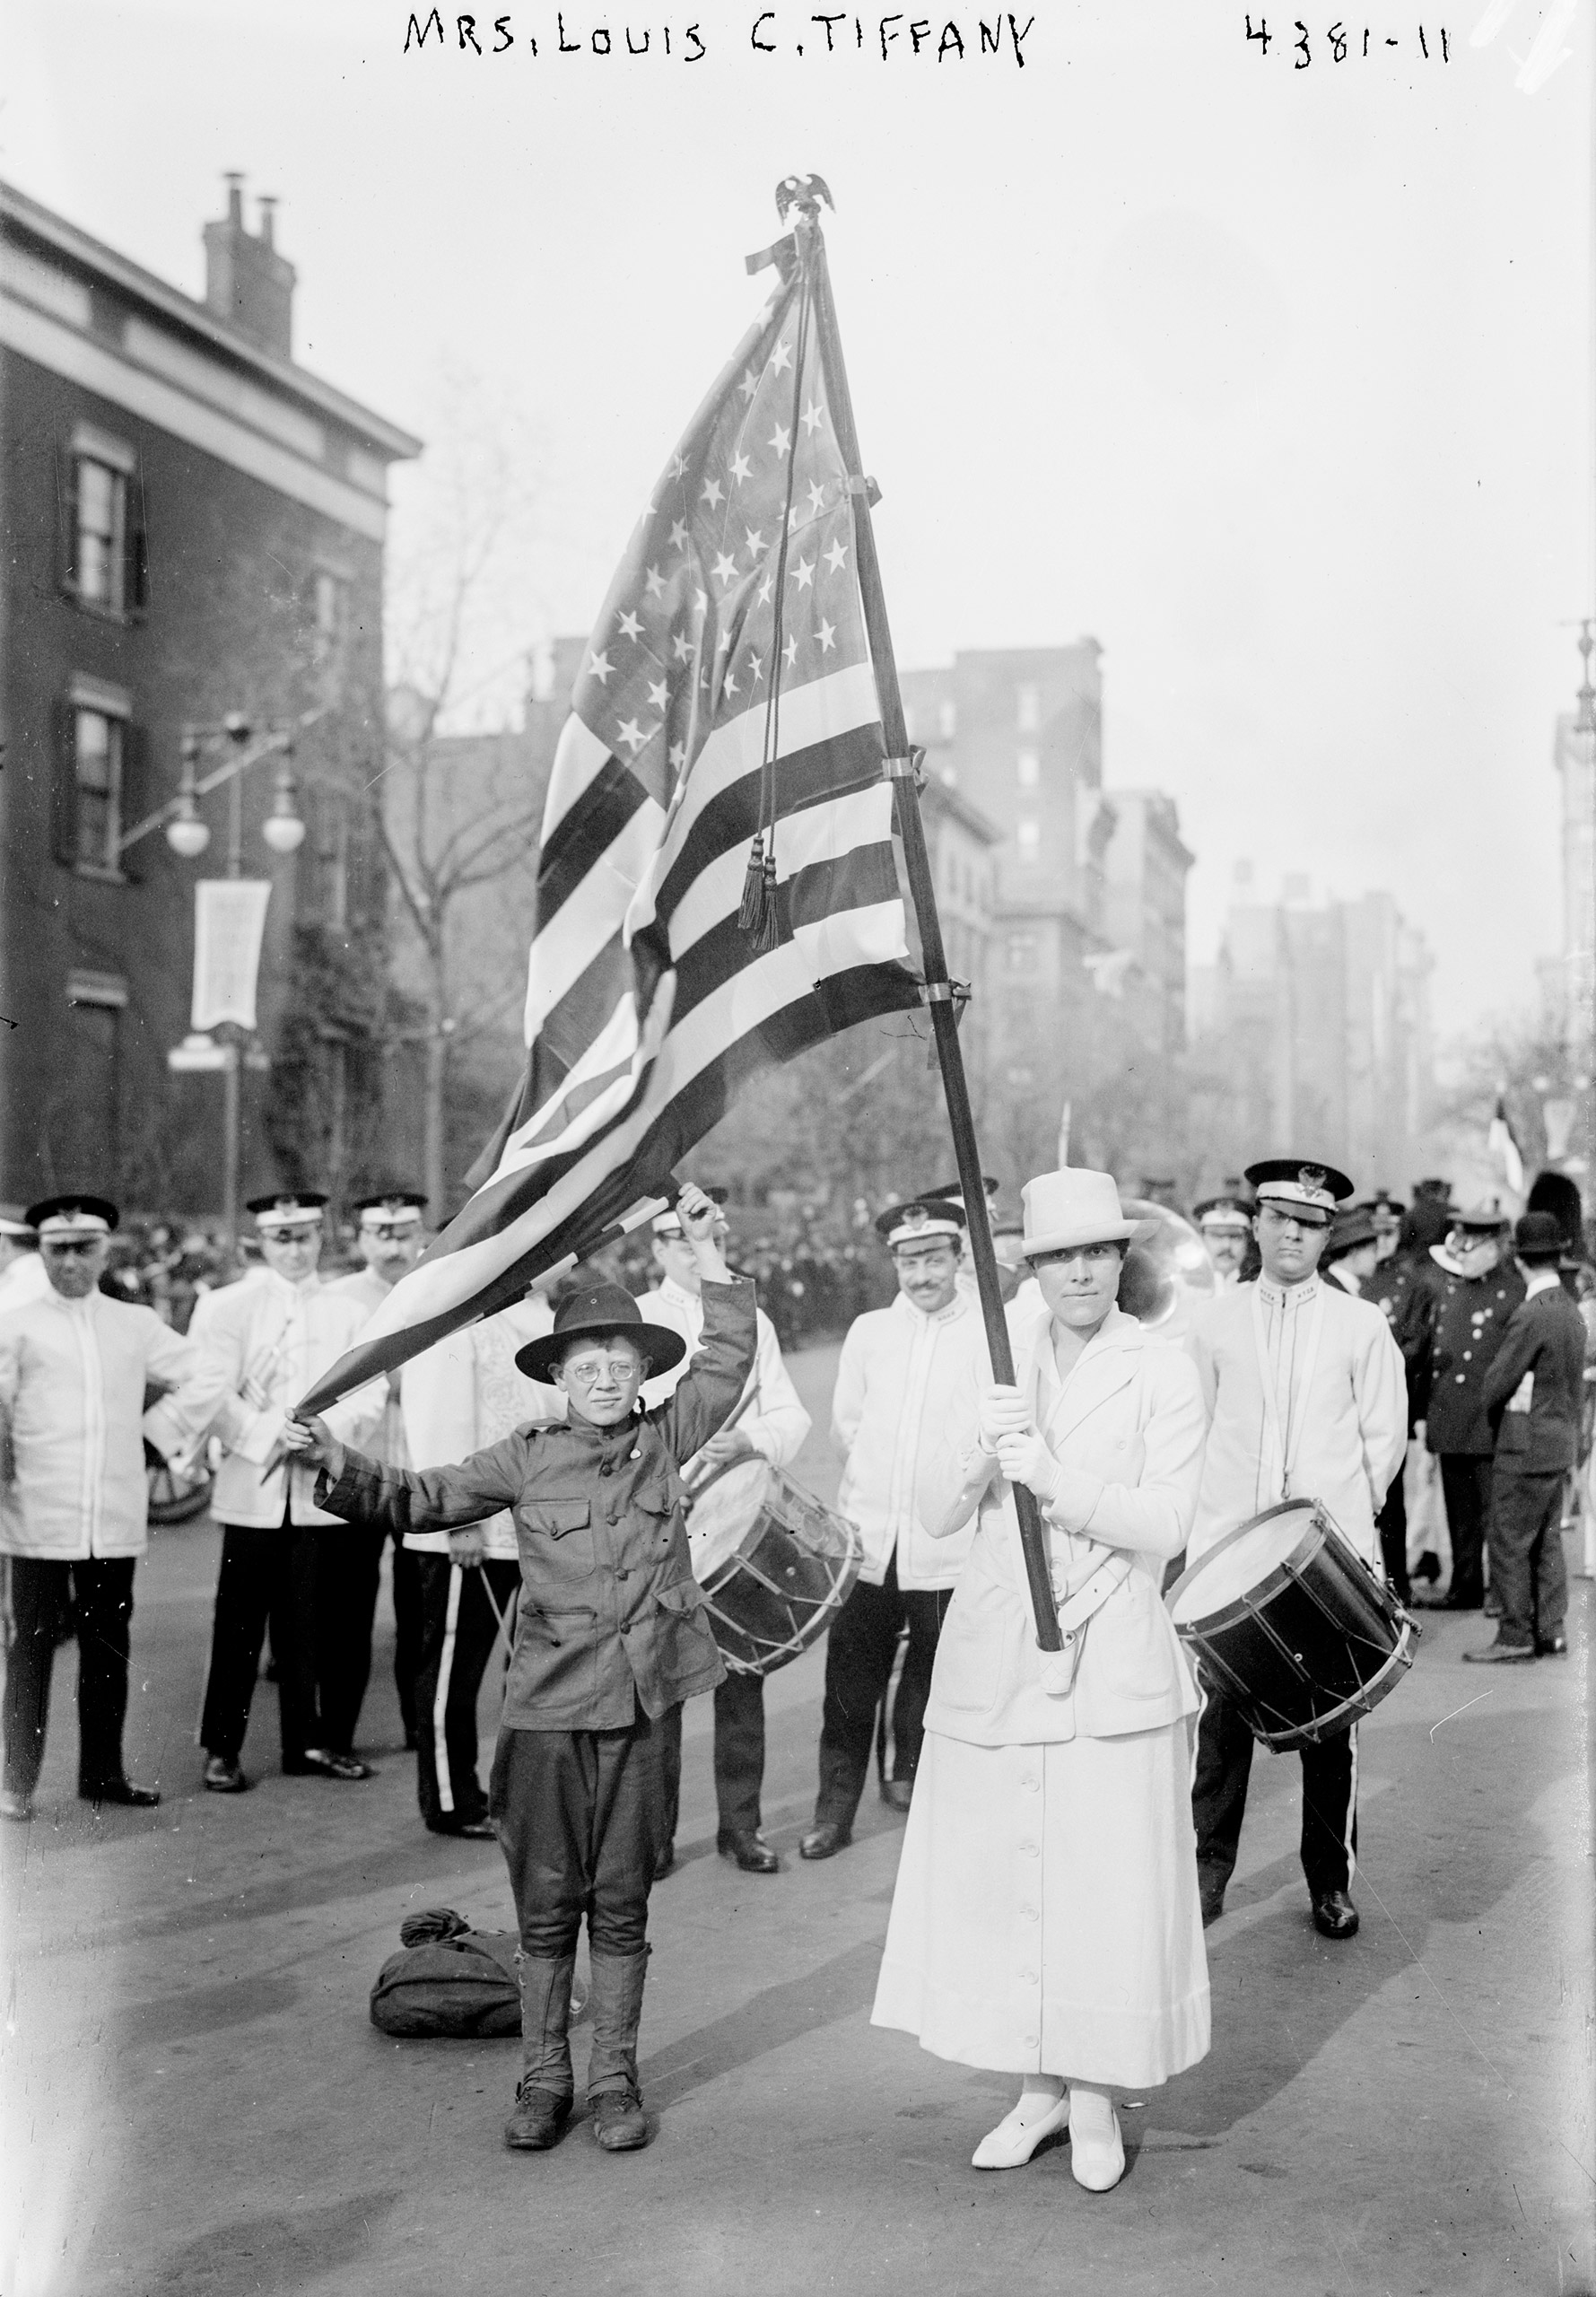 Mrs. Charles Lewis Tiffany, née Katrina Brandes Ely, carrying a flag in suffrage parade, New York City, Oct. 27, 1917.